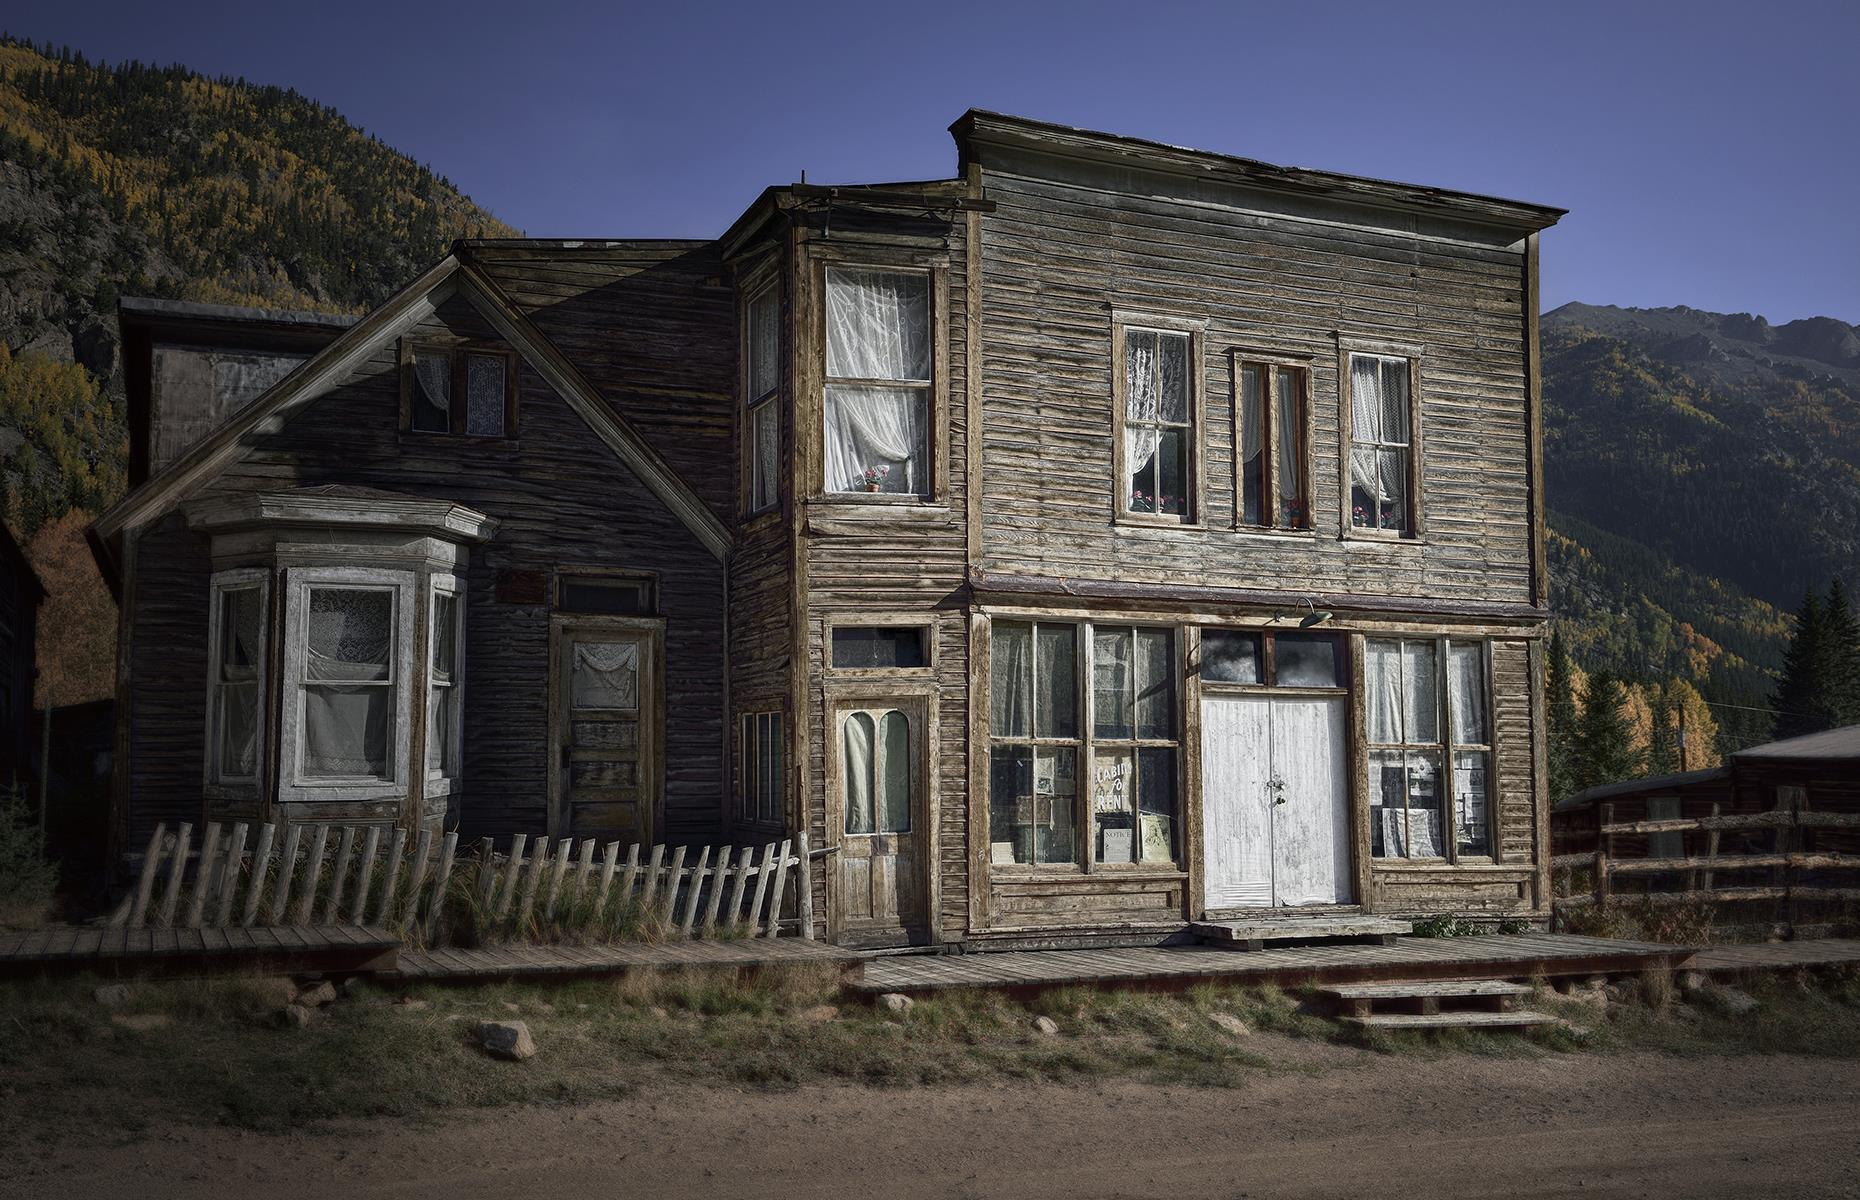 Slide 12 of 41: Especially after nightfall, St Elmo's string of wood-clad buildings wouldn't look out of place in a horror film. The mining town sprang up in the 1880s with nearly 2,000 residents living off the bounty of gold and silver in the region. However, in the 1920s, the halting of a key railroad service meant that St Elmo's inhabitants up and left, riding the last train out of town and never looking back.